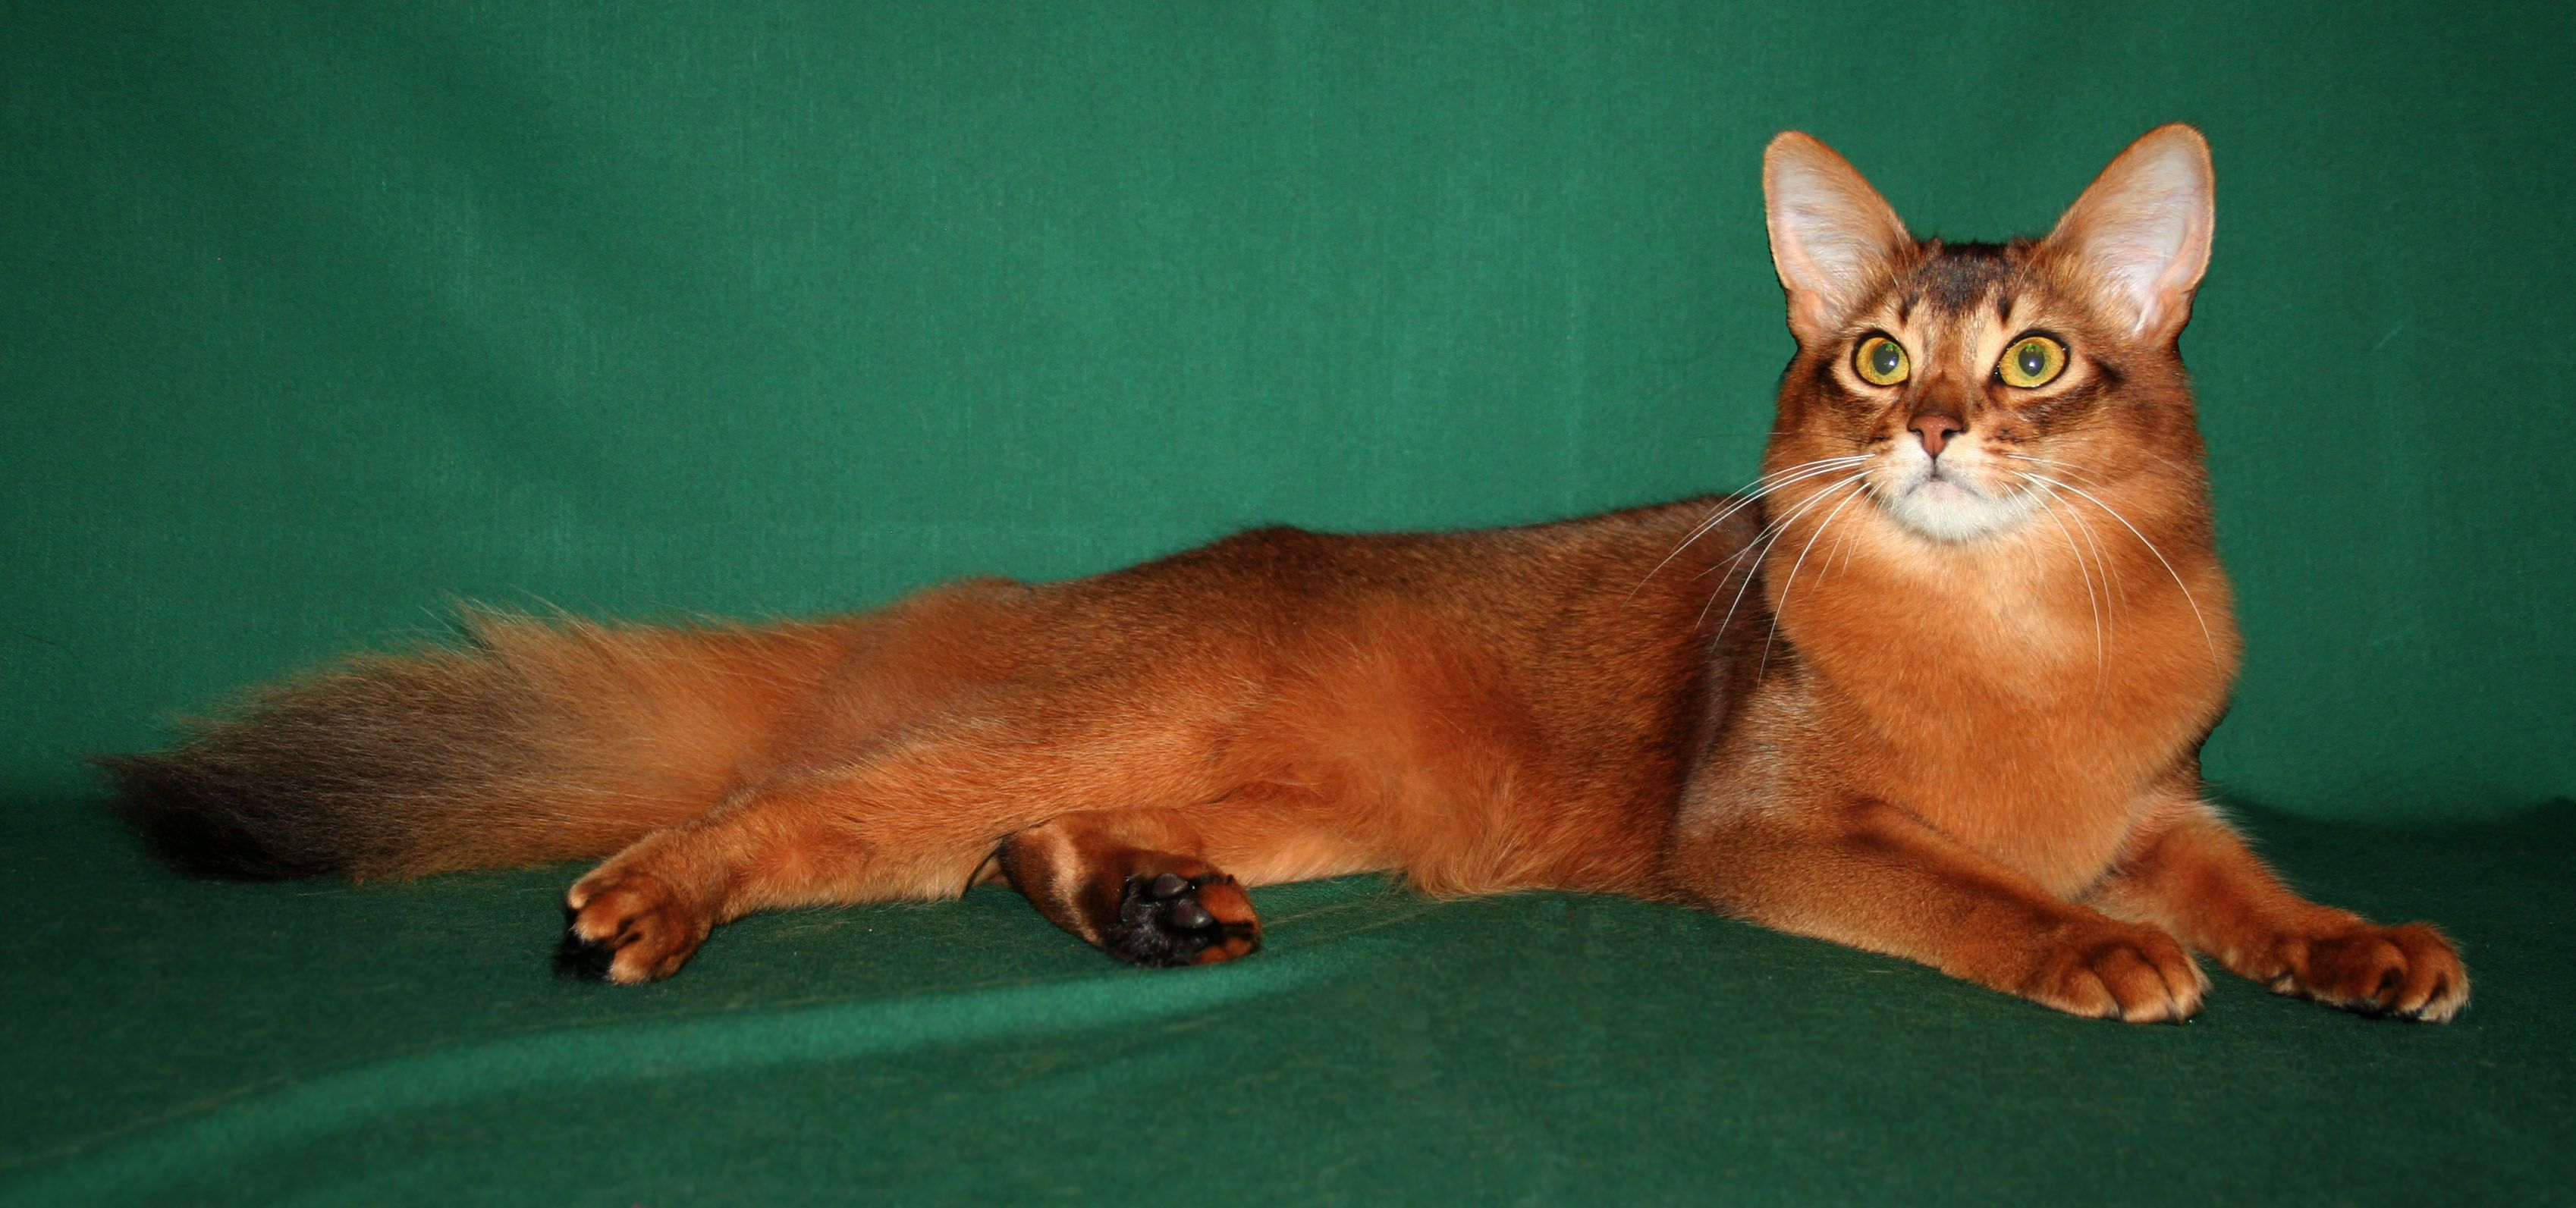 Somali Cat Looks Personality and How to Care for Your Somali